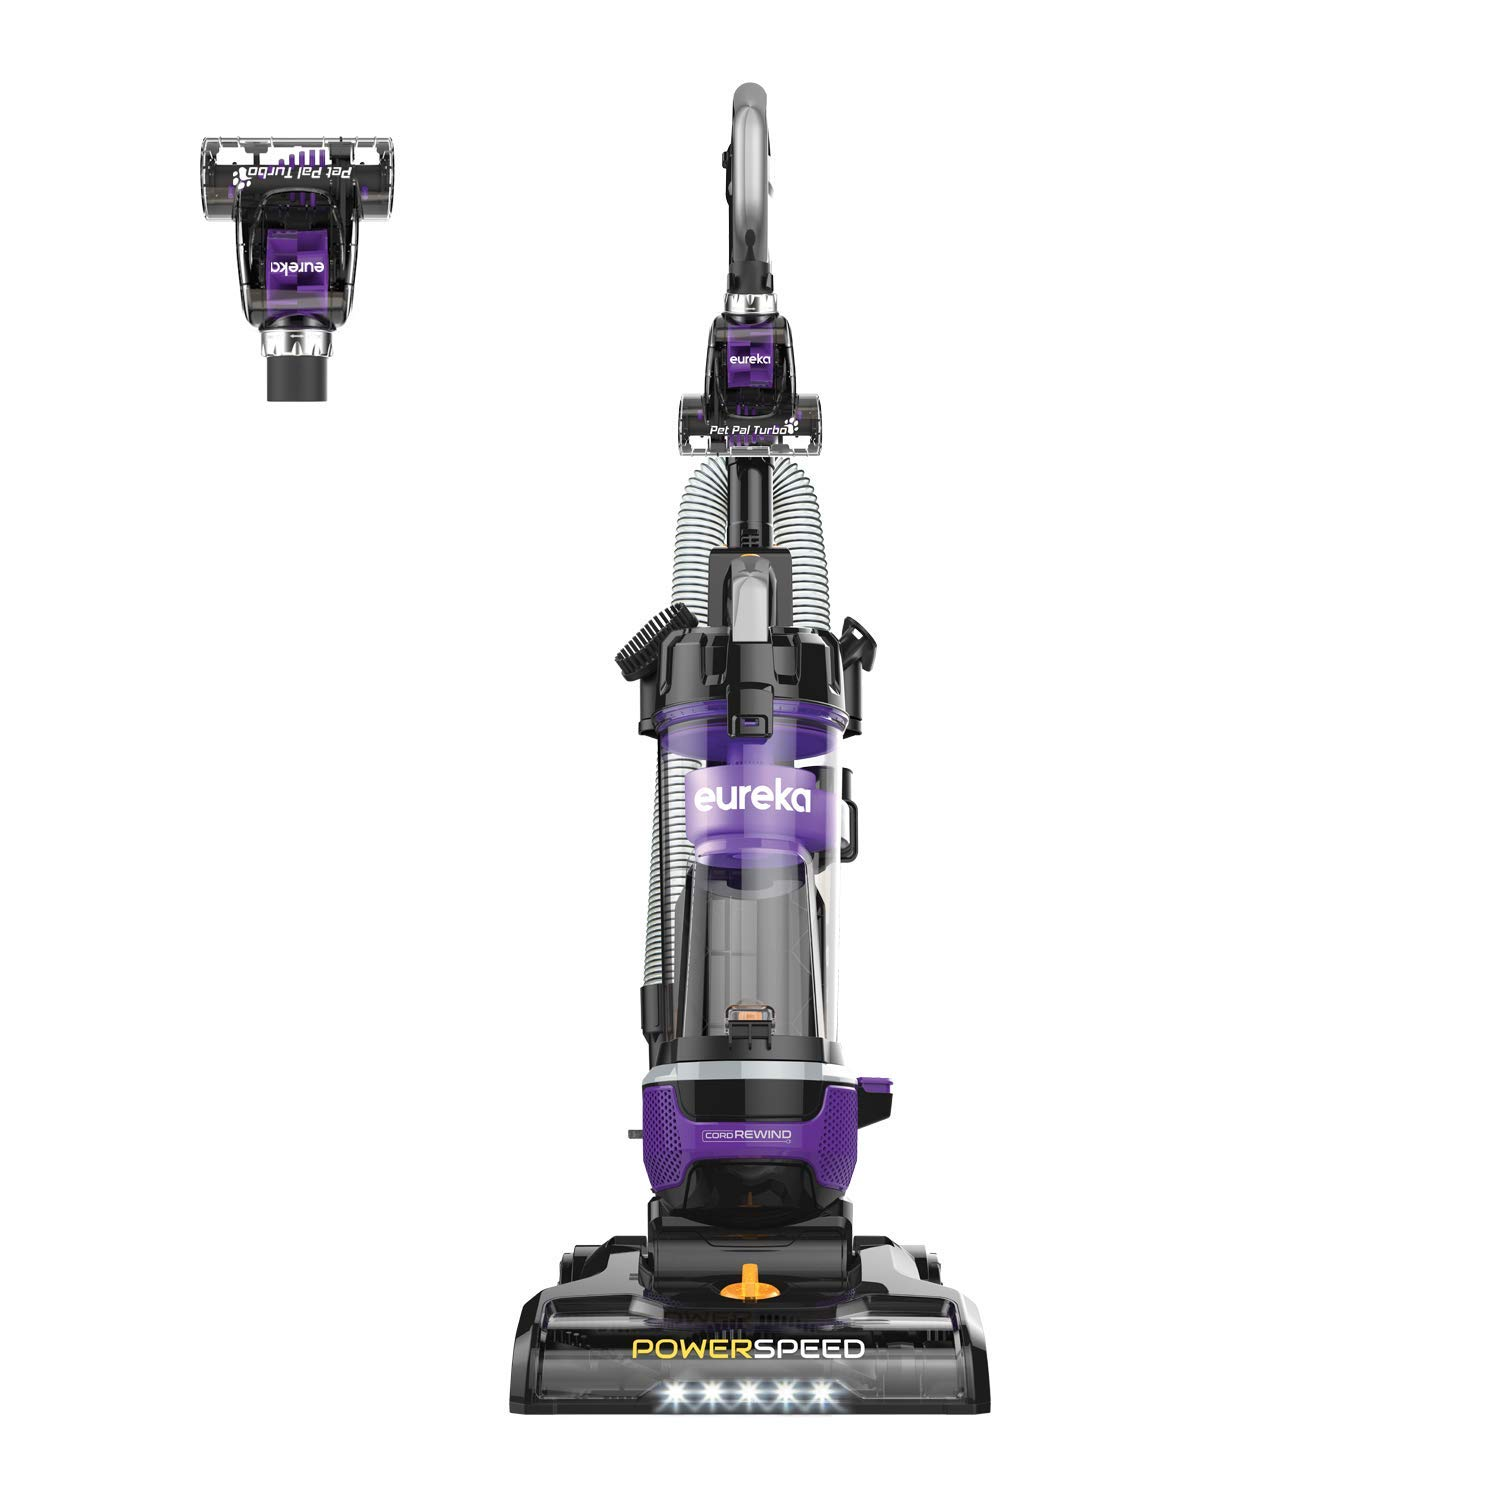 Eureka NEU202 PowerSpeed Pet Bagless Upright Vacuum Cleaner with Automatic Cord Rewind and LED Headlight, Purple (Renewed)